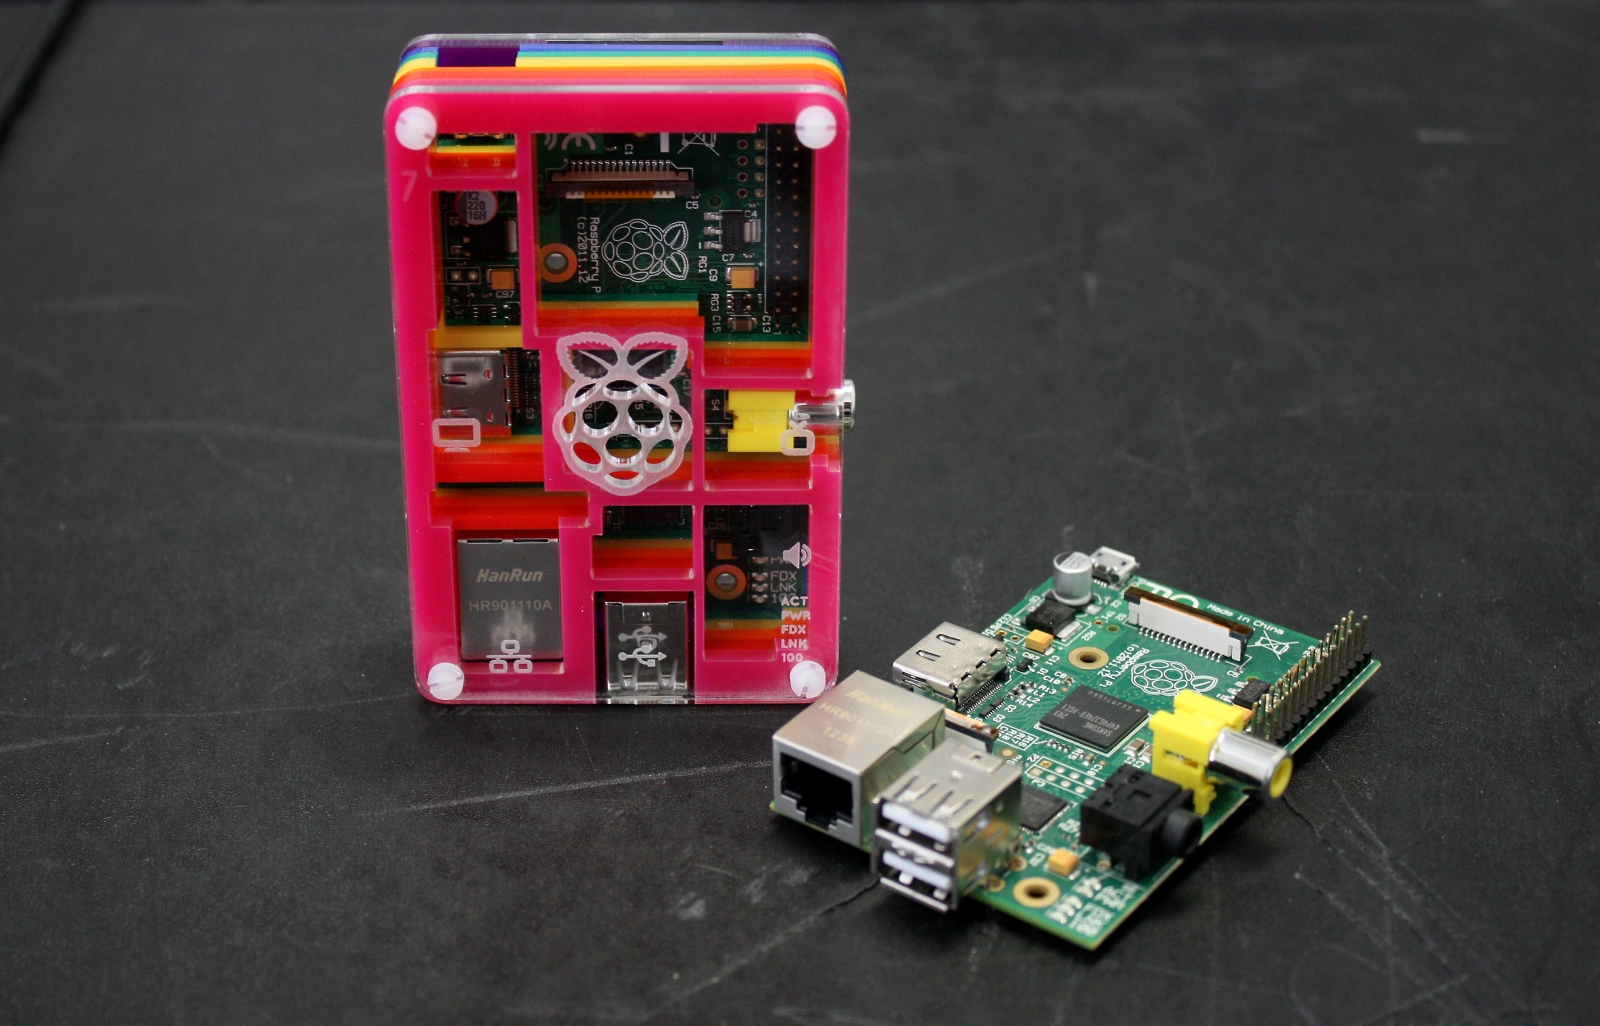 UK electronics group behind the £4 Raspberry Pi mini computer agrees to a takeover from Daetwyler